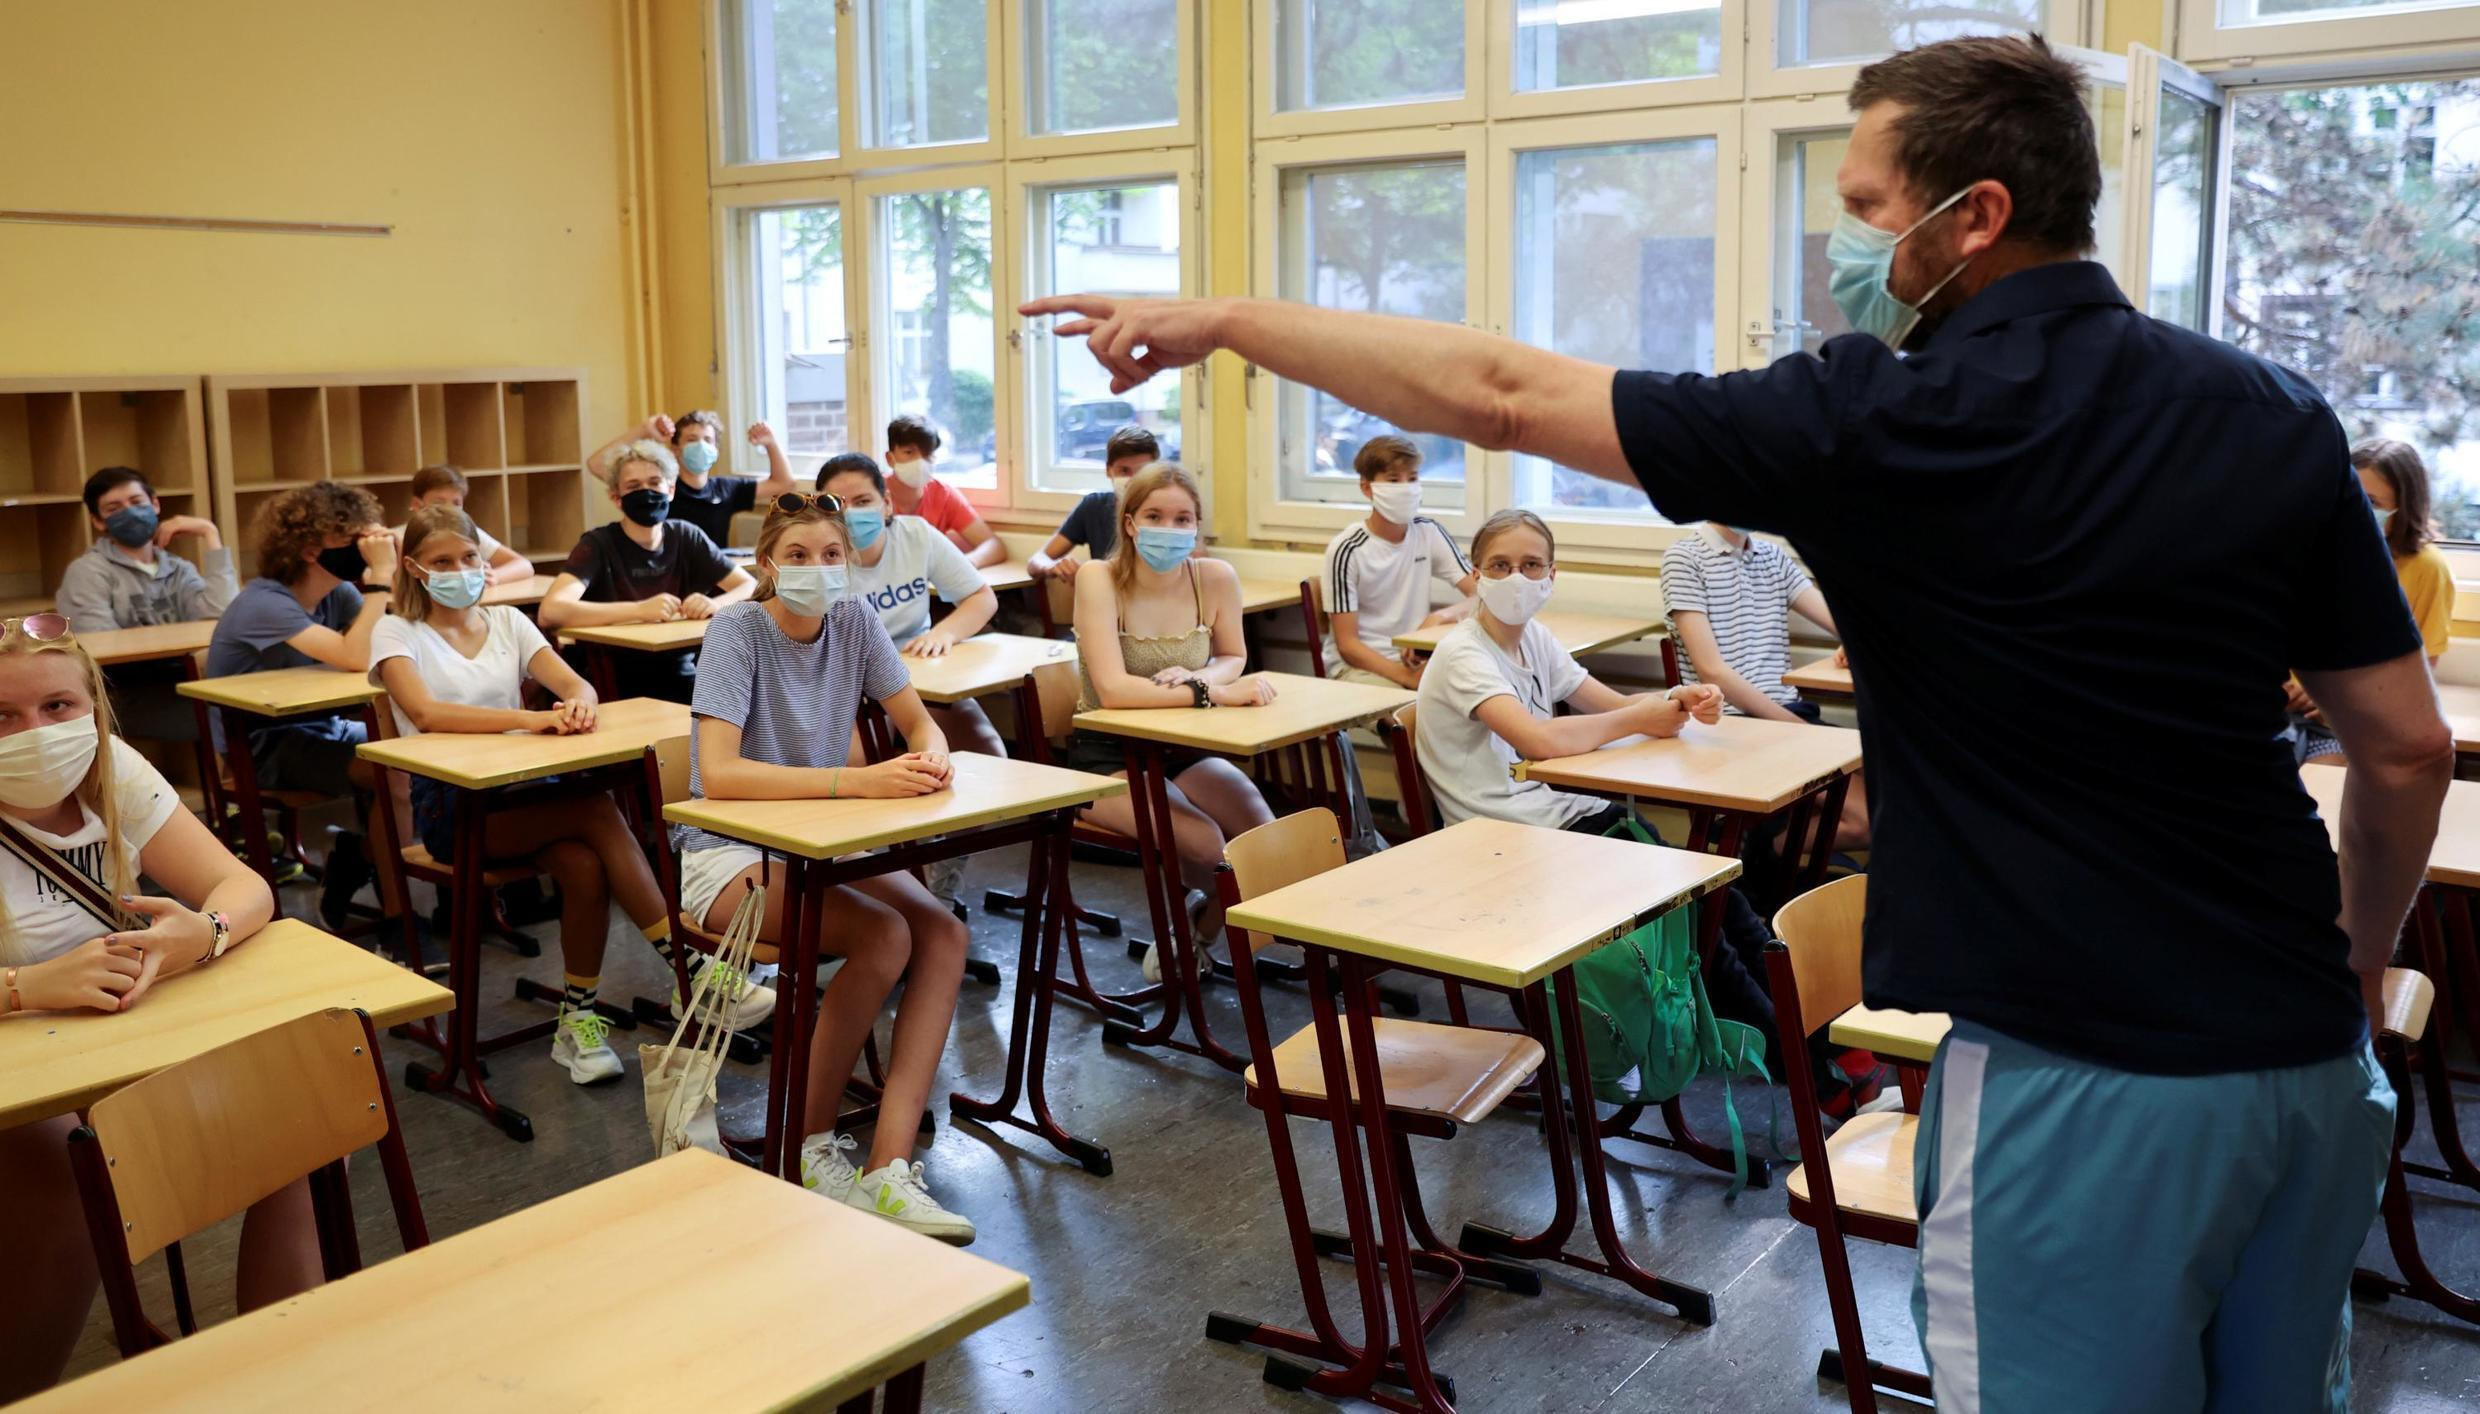 German schools and colleges reopened on 10 August, with masks and physical distance rules to limit the spread of Covid-19.